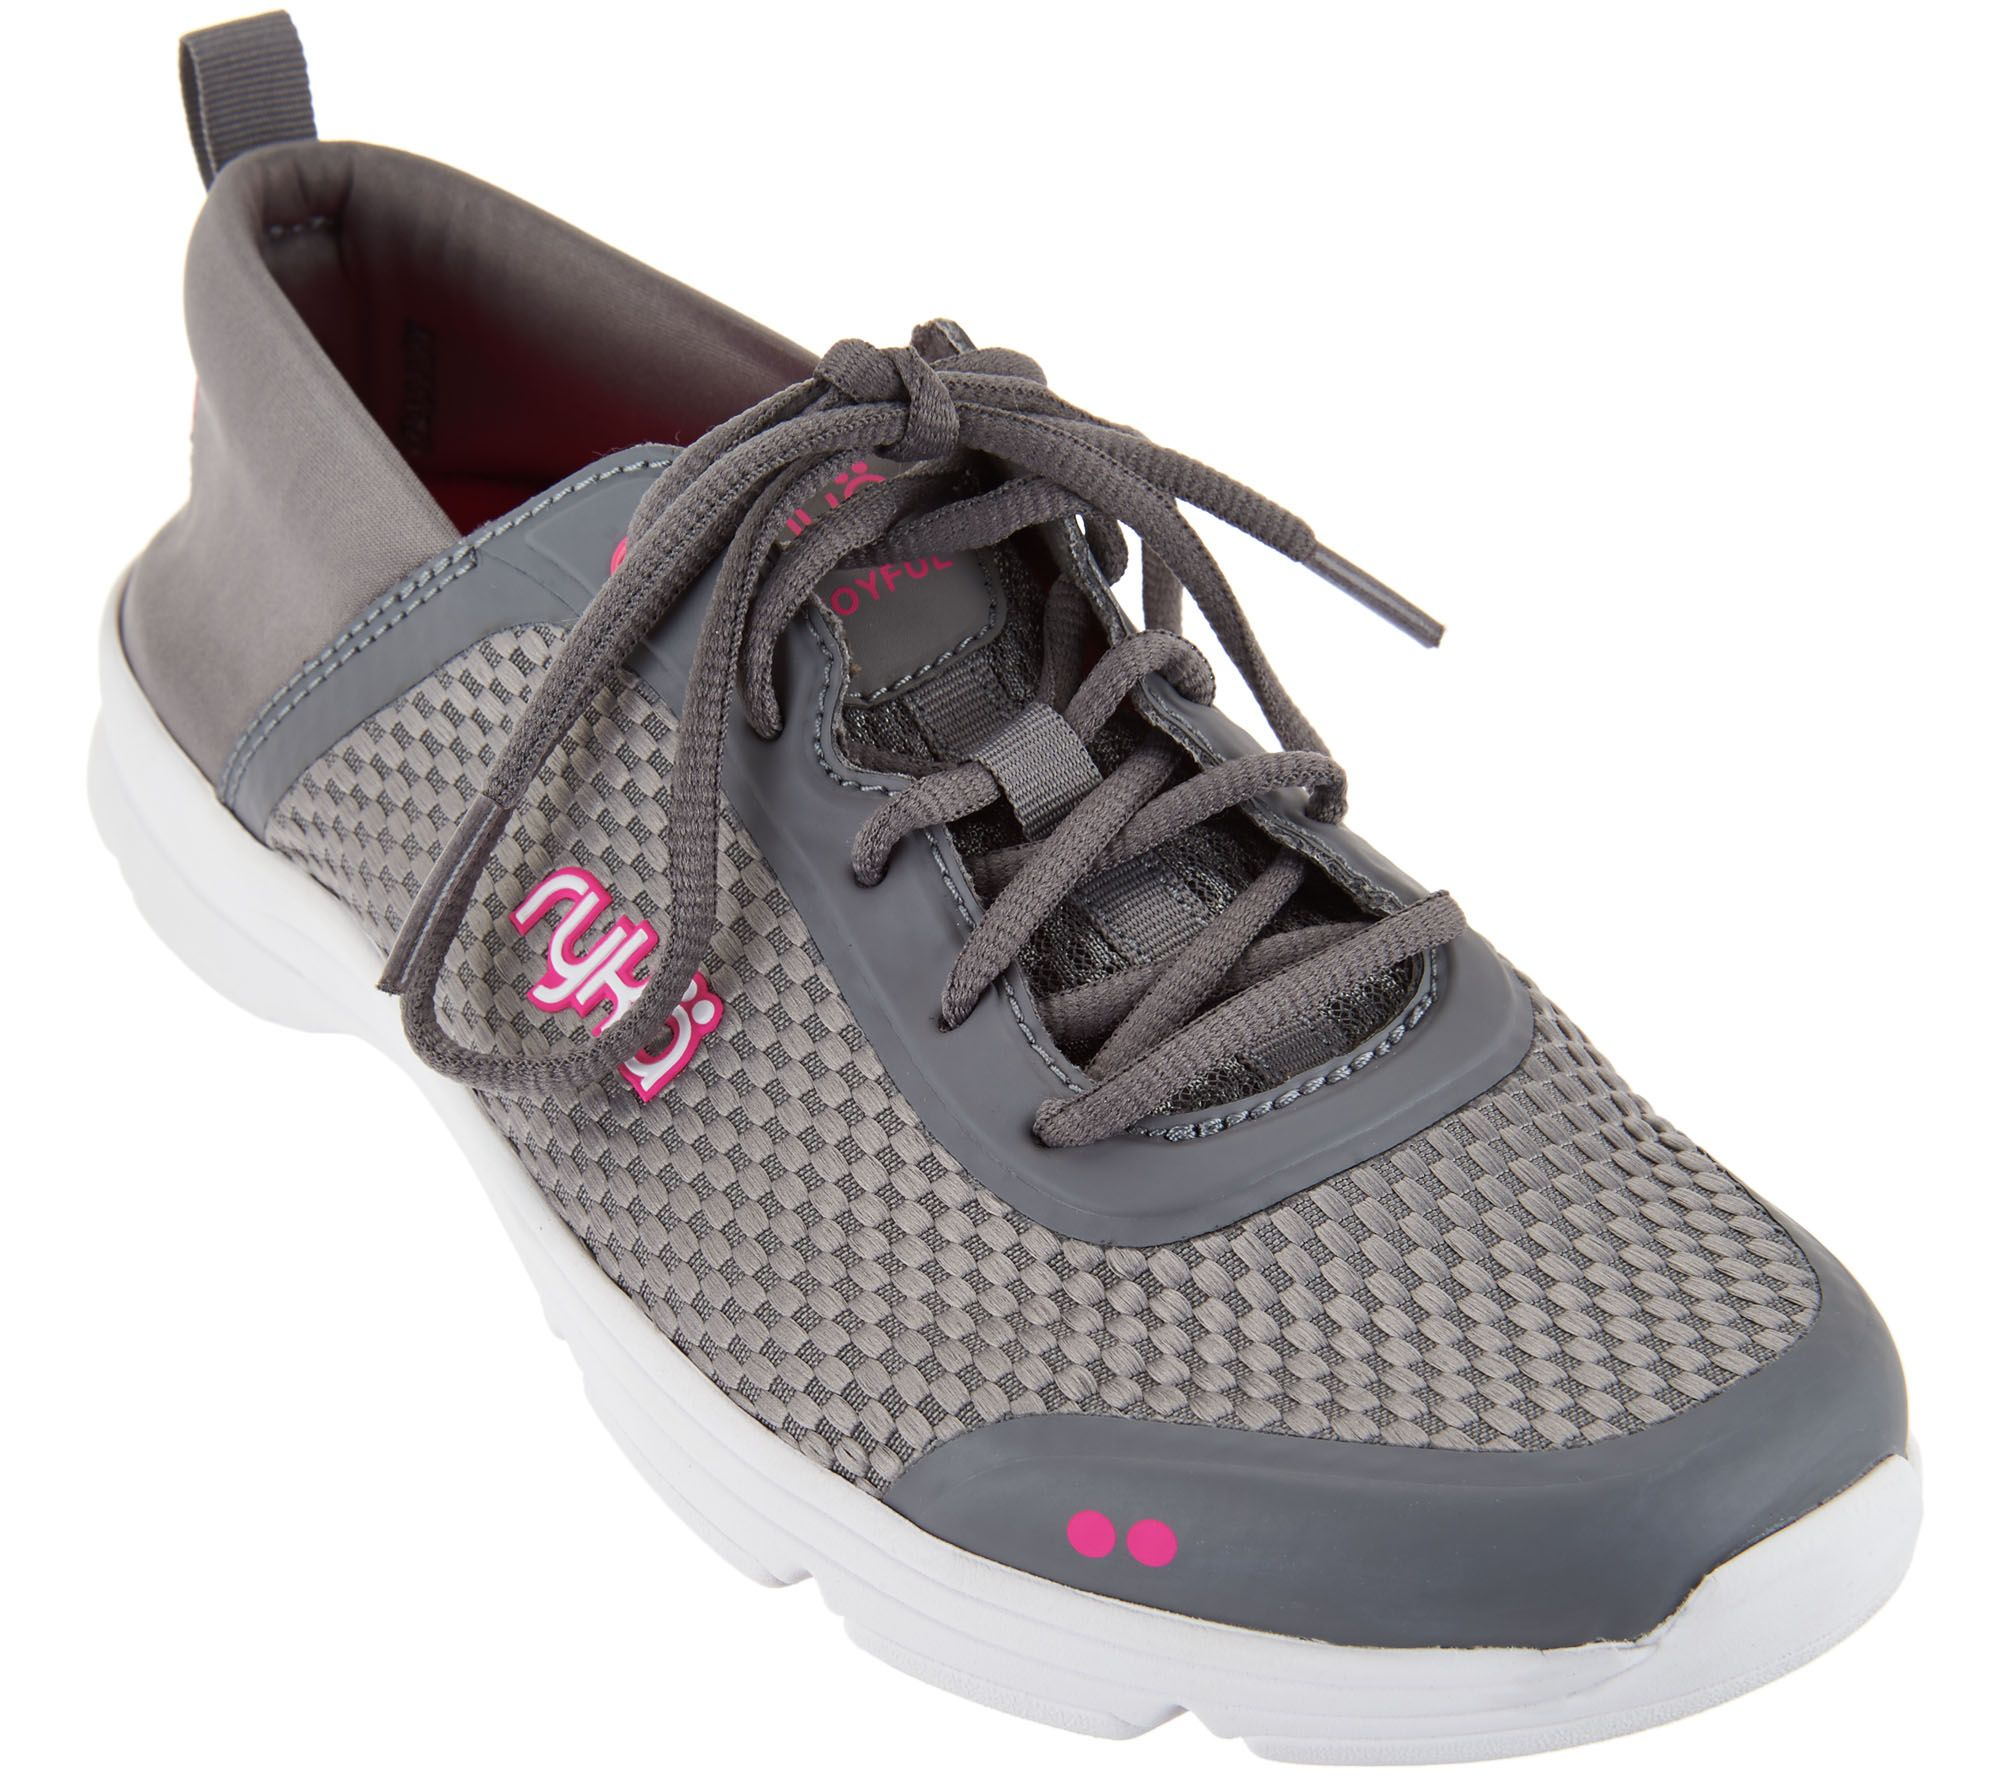 Neoprene lace-up jogging shoes Ebay Cheap Price OcqRx